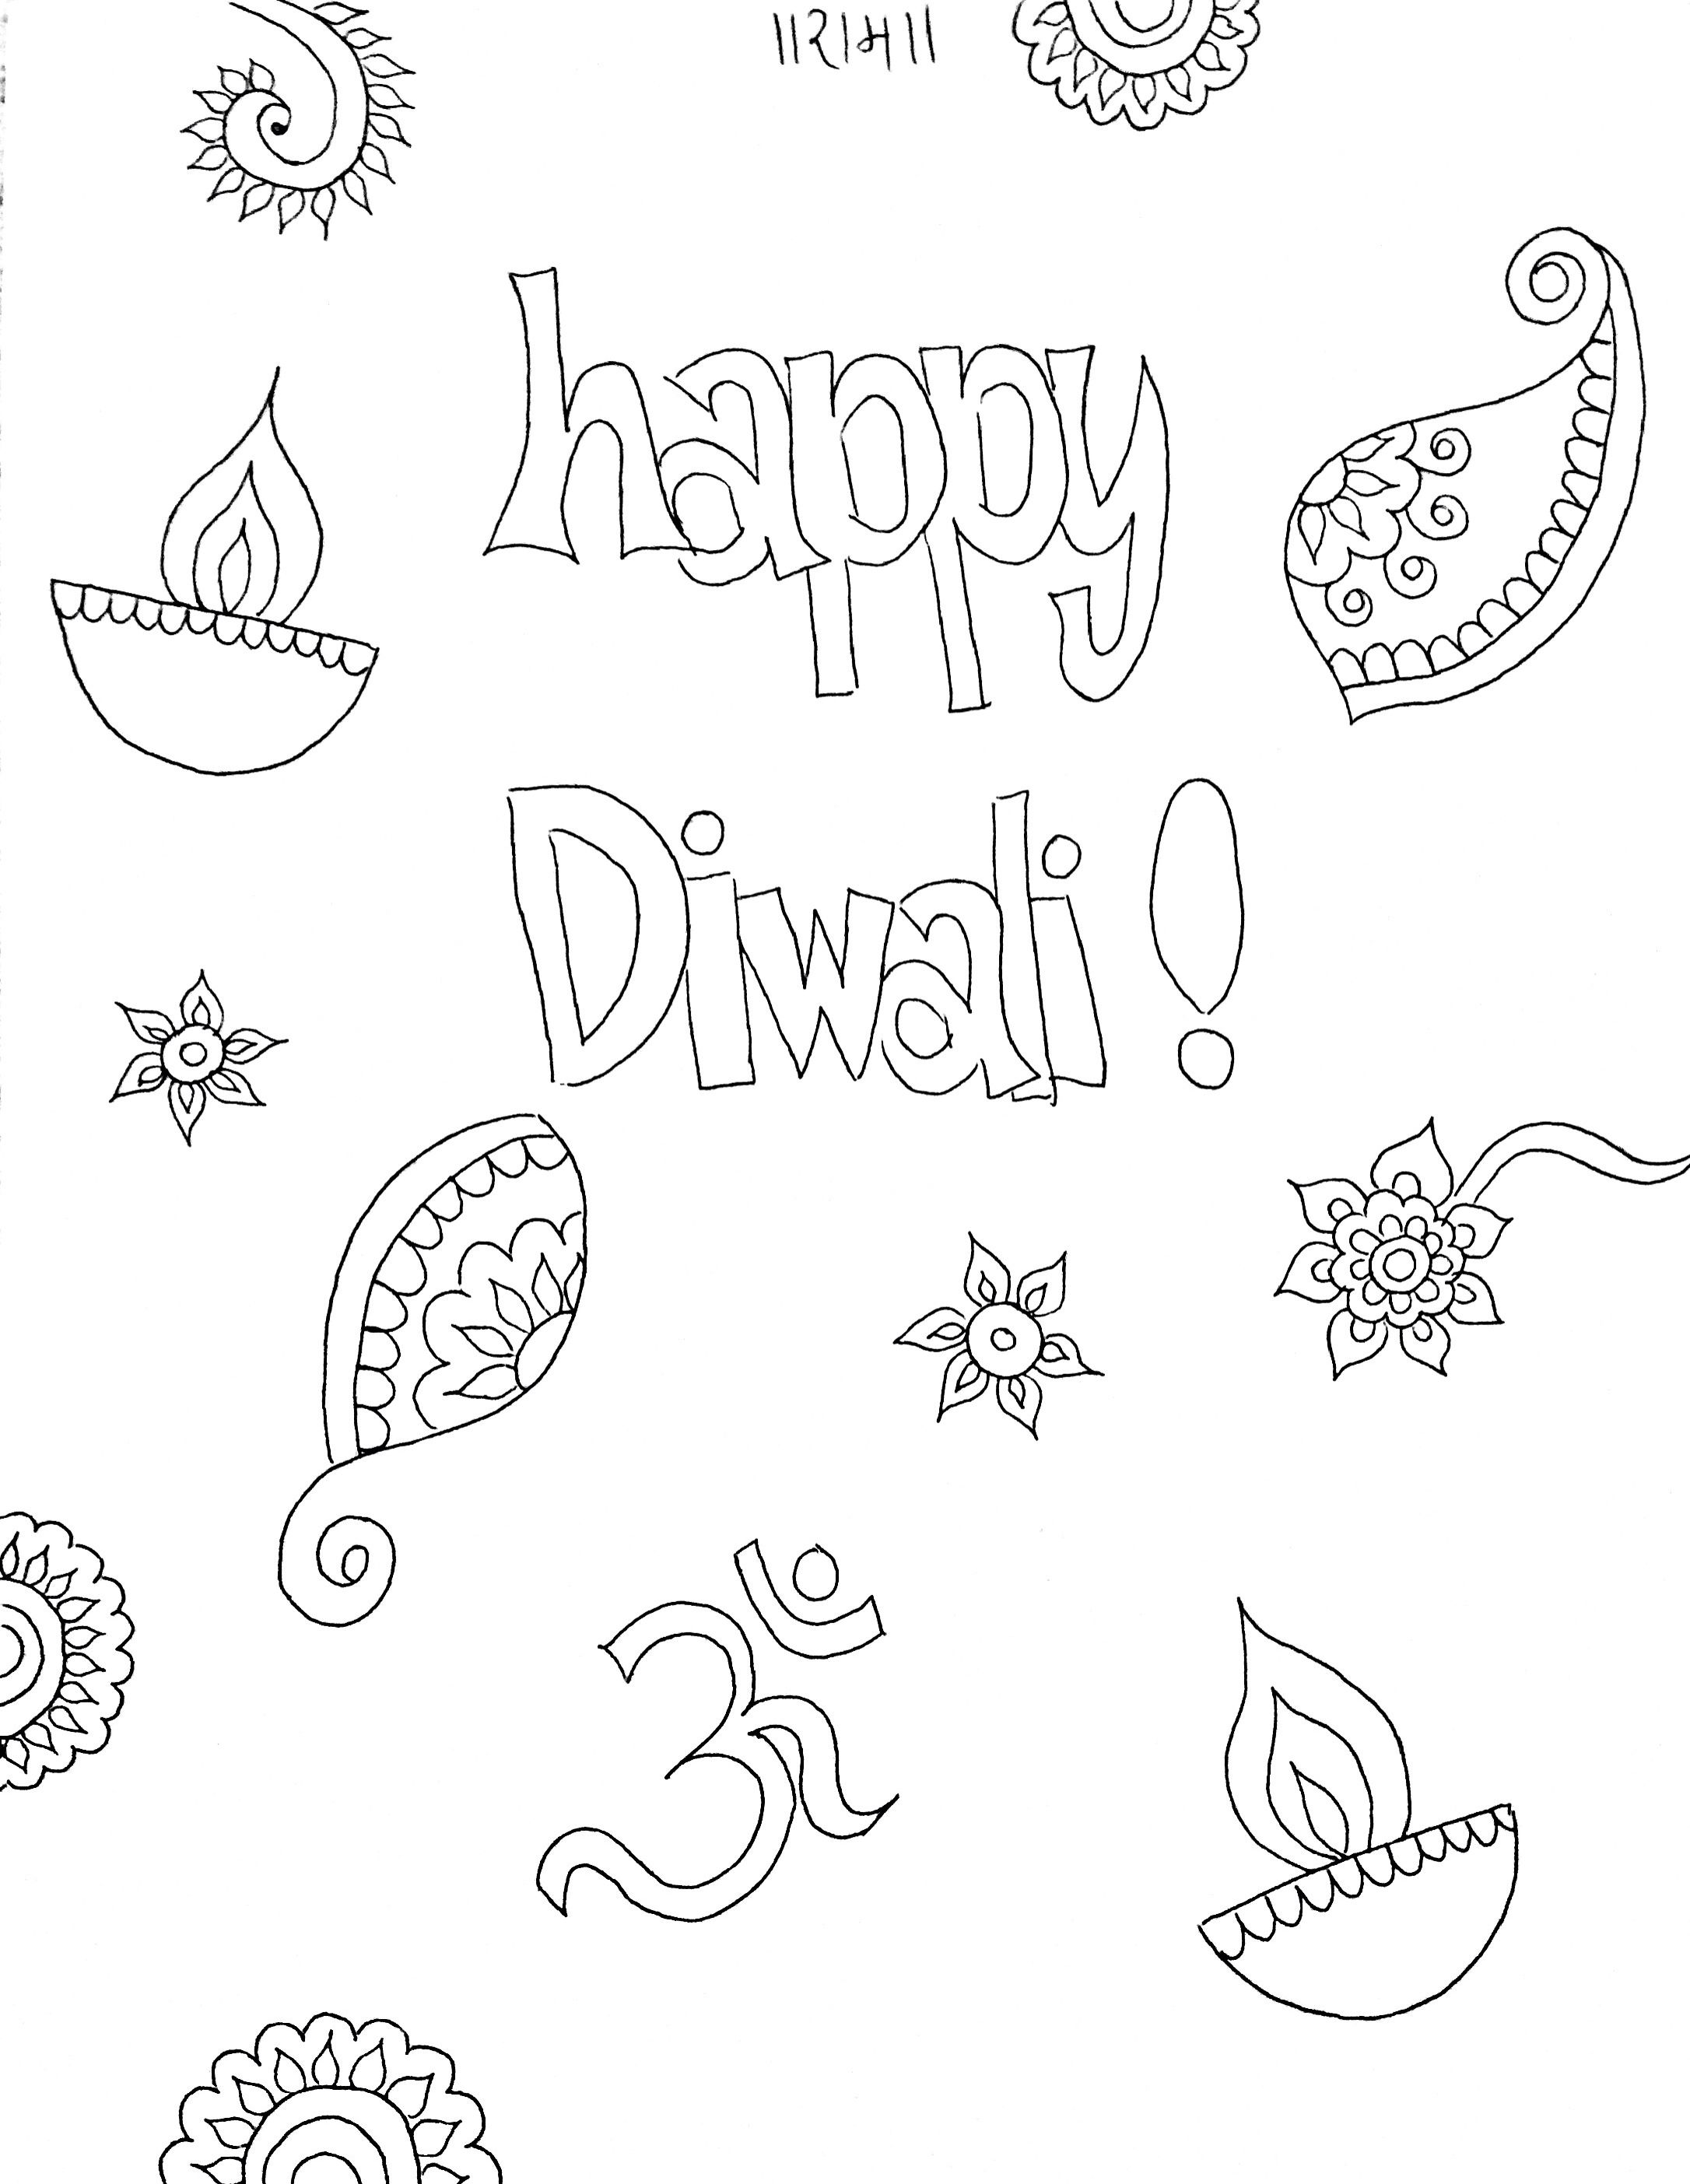 Diwali coloring sheet for kids | My Style | Pinterest | Diwali and ...